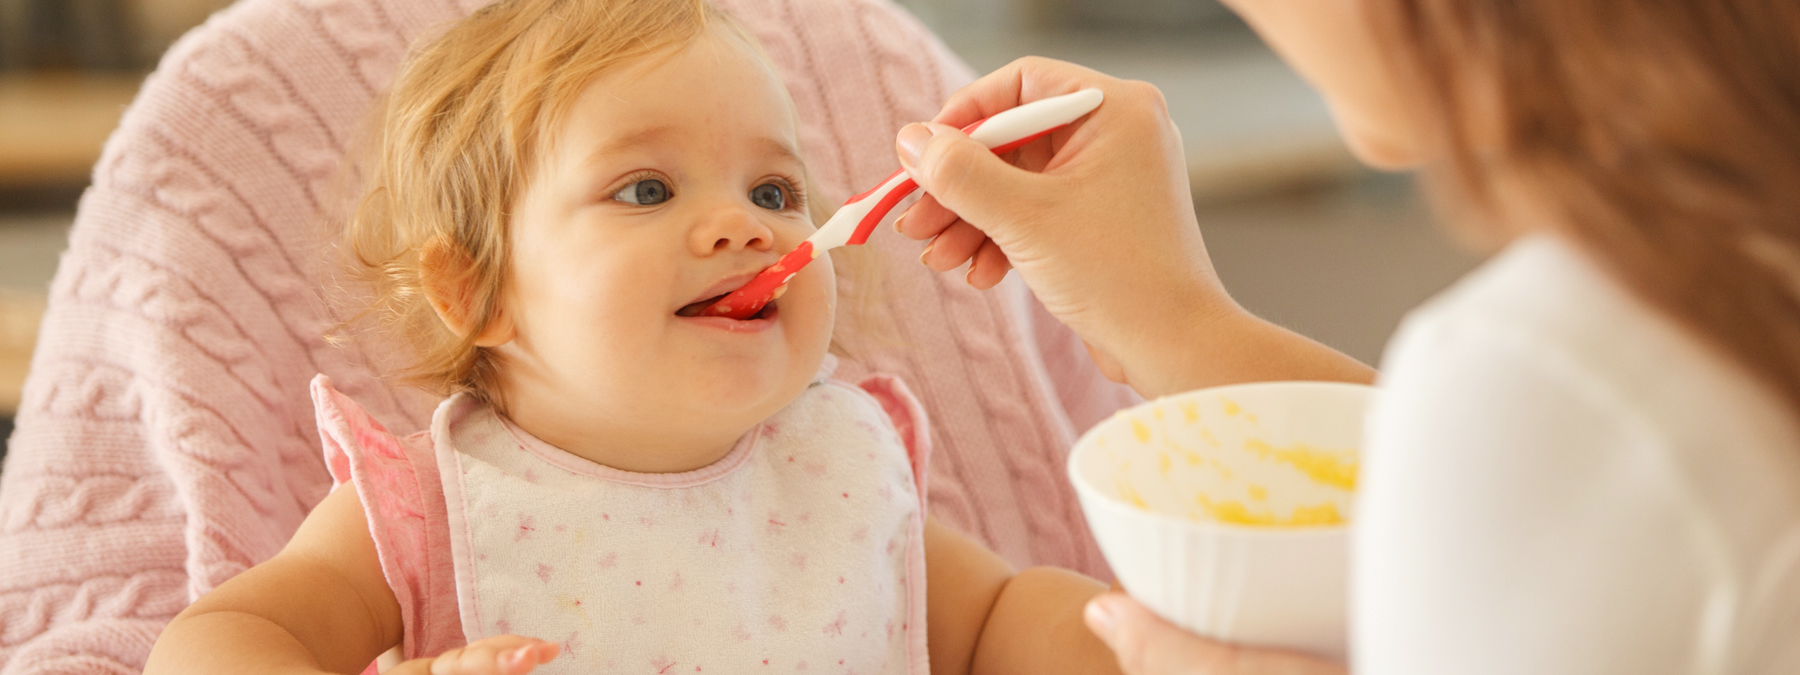 Aiming for children to be happy healthy eaters